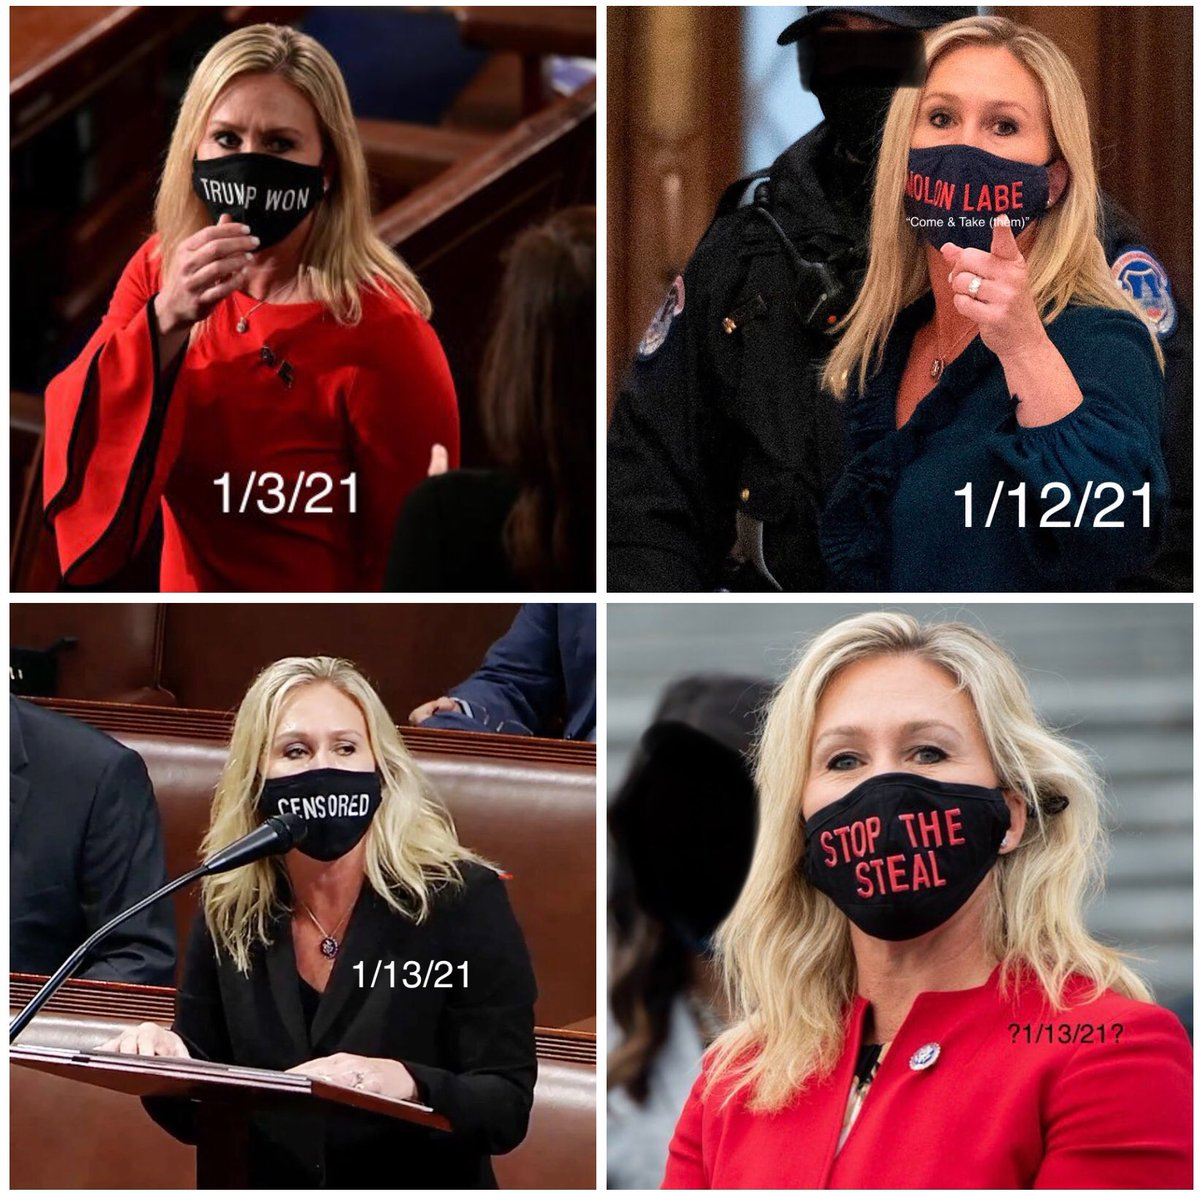 And now a congressperson, @RepMTG wears these masks on the grounds or in the #USCapitol! #ConspiracyLunatic #DomesticTerrorists #SeditionHasConsequences #ExpelMarjorieTaylorGreene